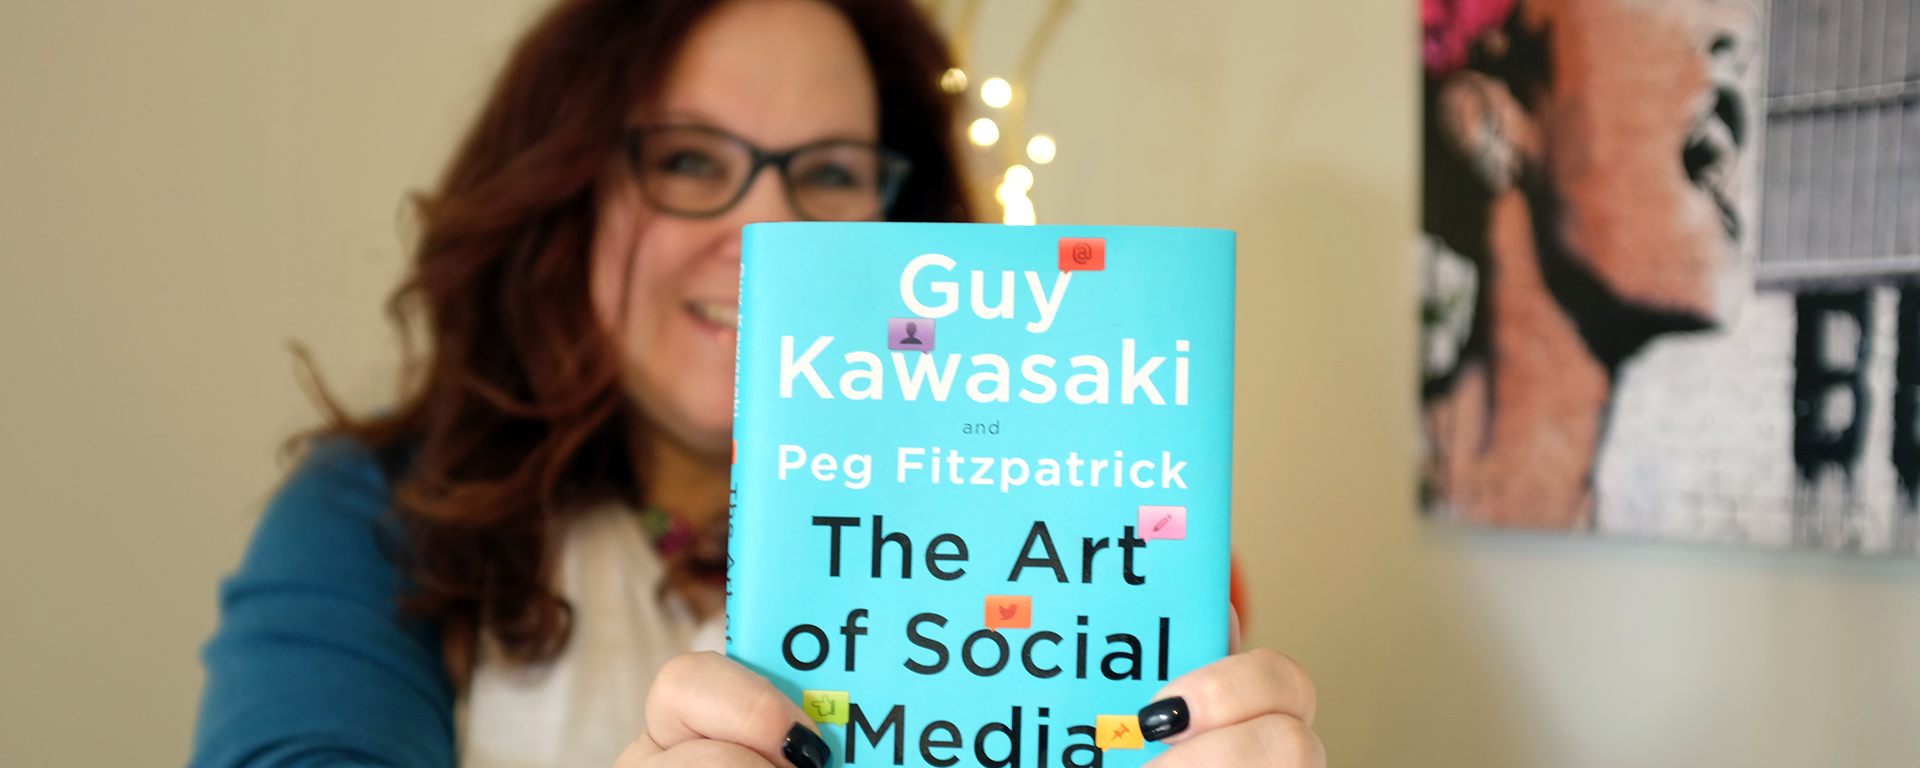 The Art of Social Media According to Peg Fitzpatrick